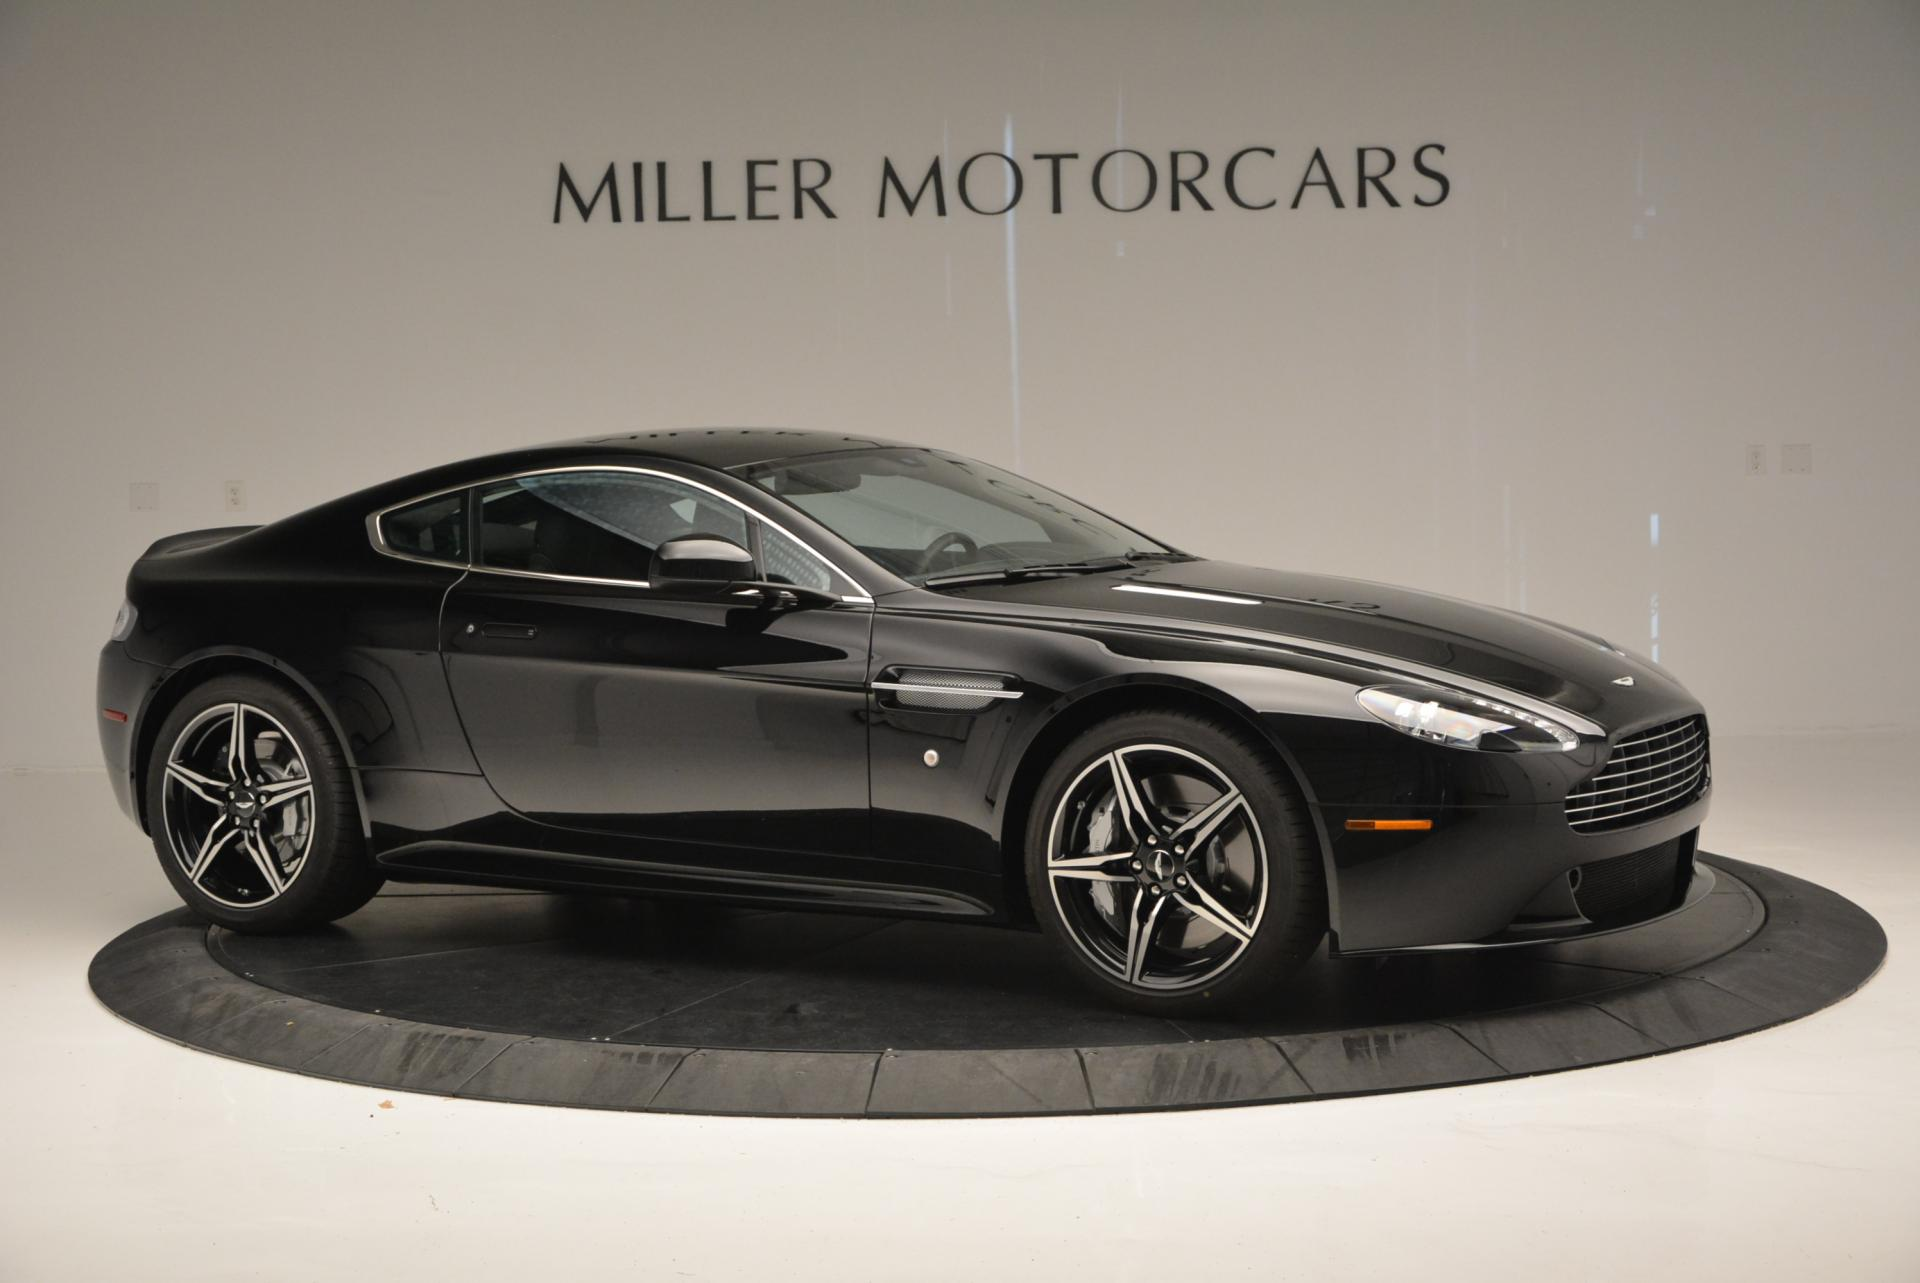 New 2016 Aston Martin V8 Vantage GTS S For Sale In Westport, CT 526_p8